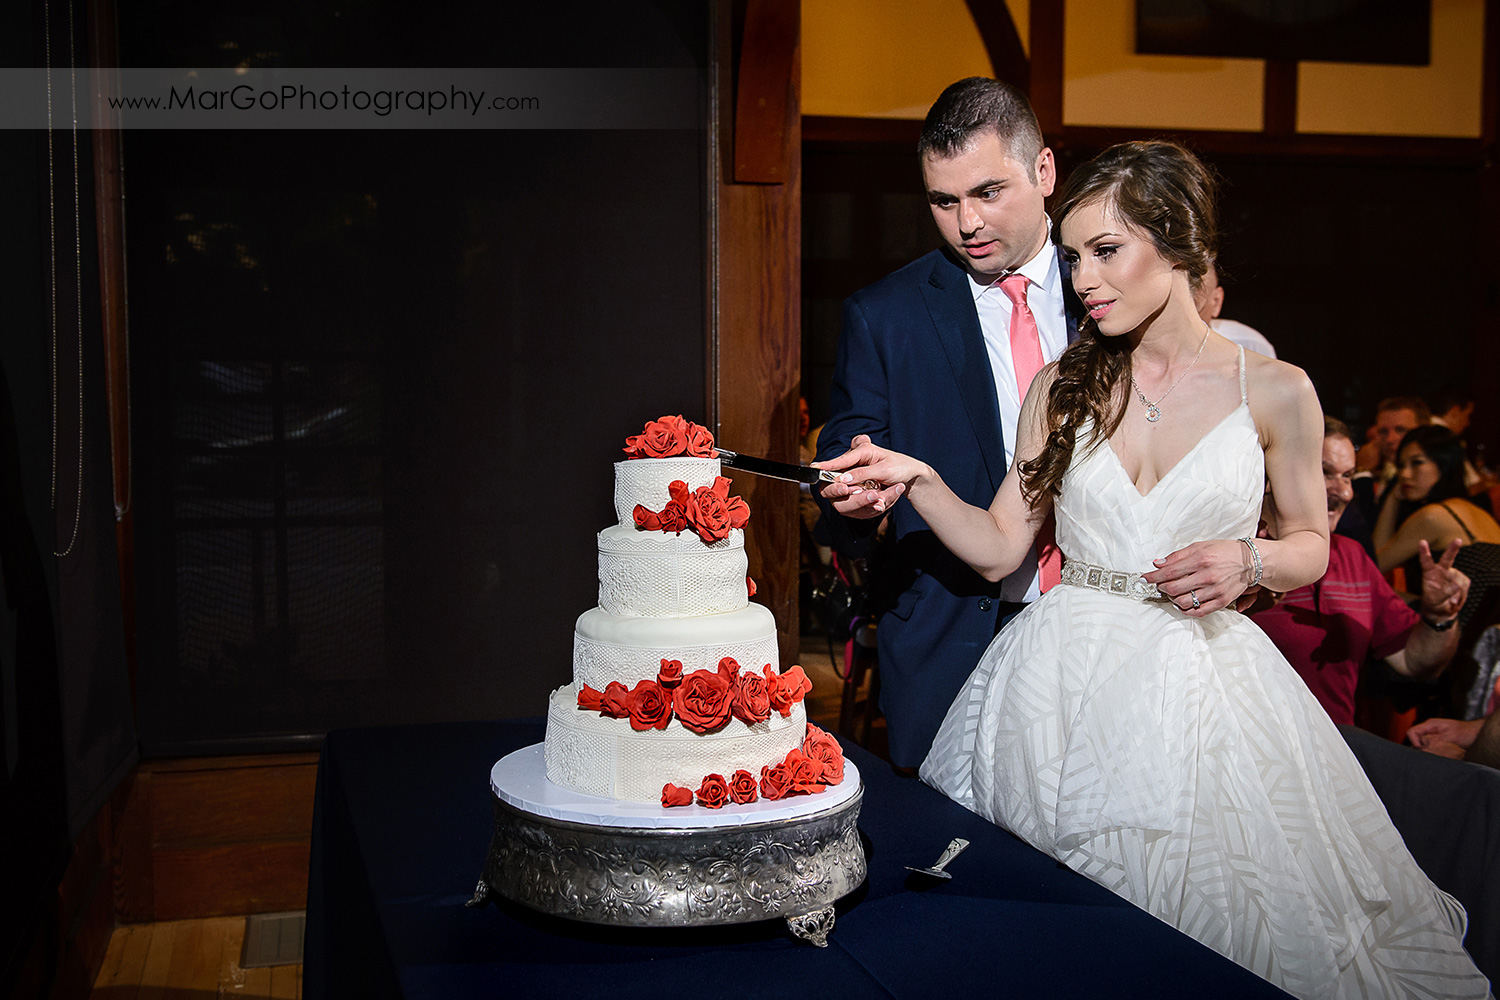 bride and groom cutting cake during wedding reception at Saratoga Foothill Club